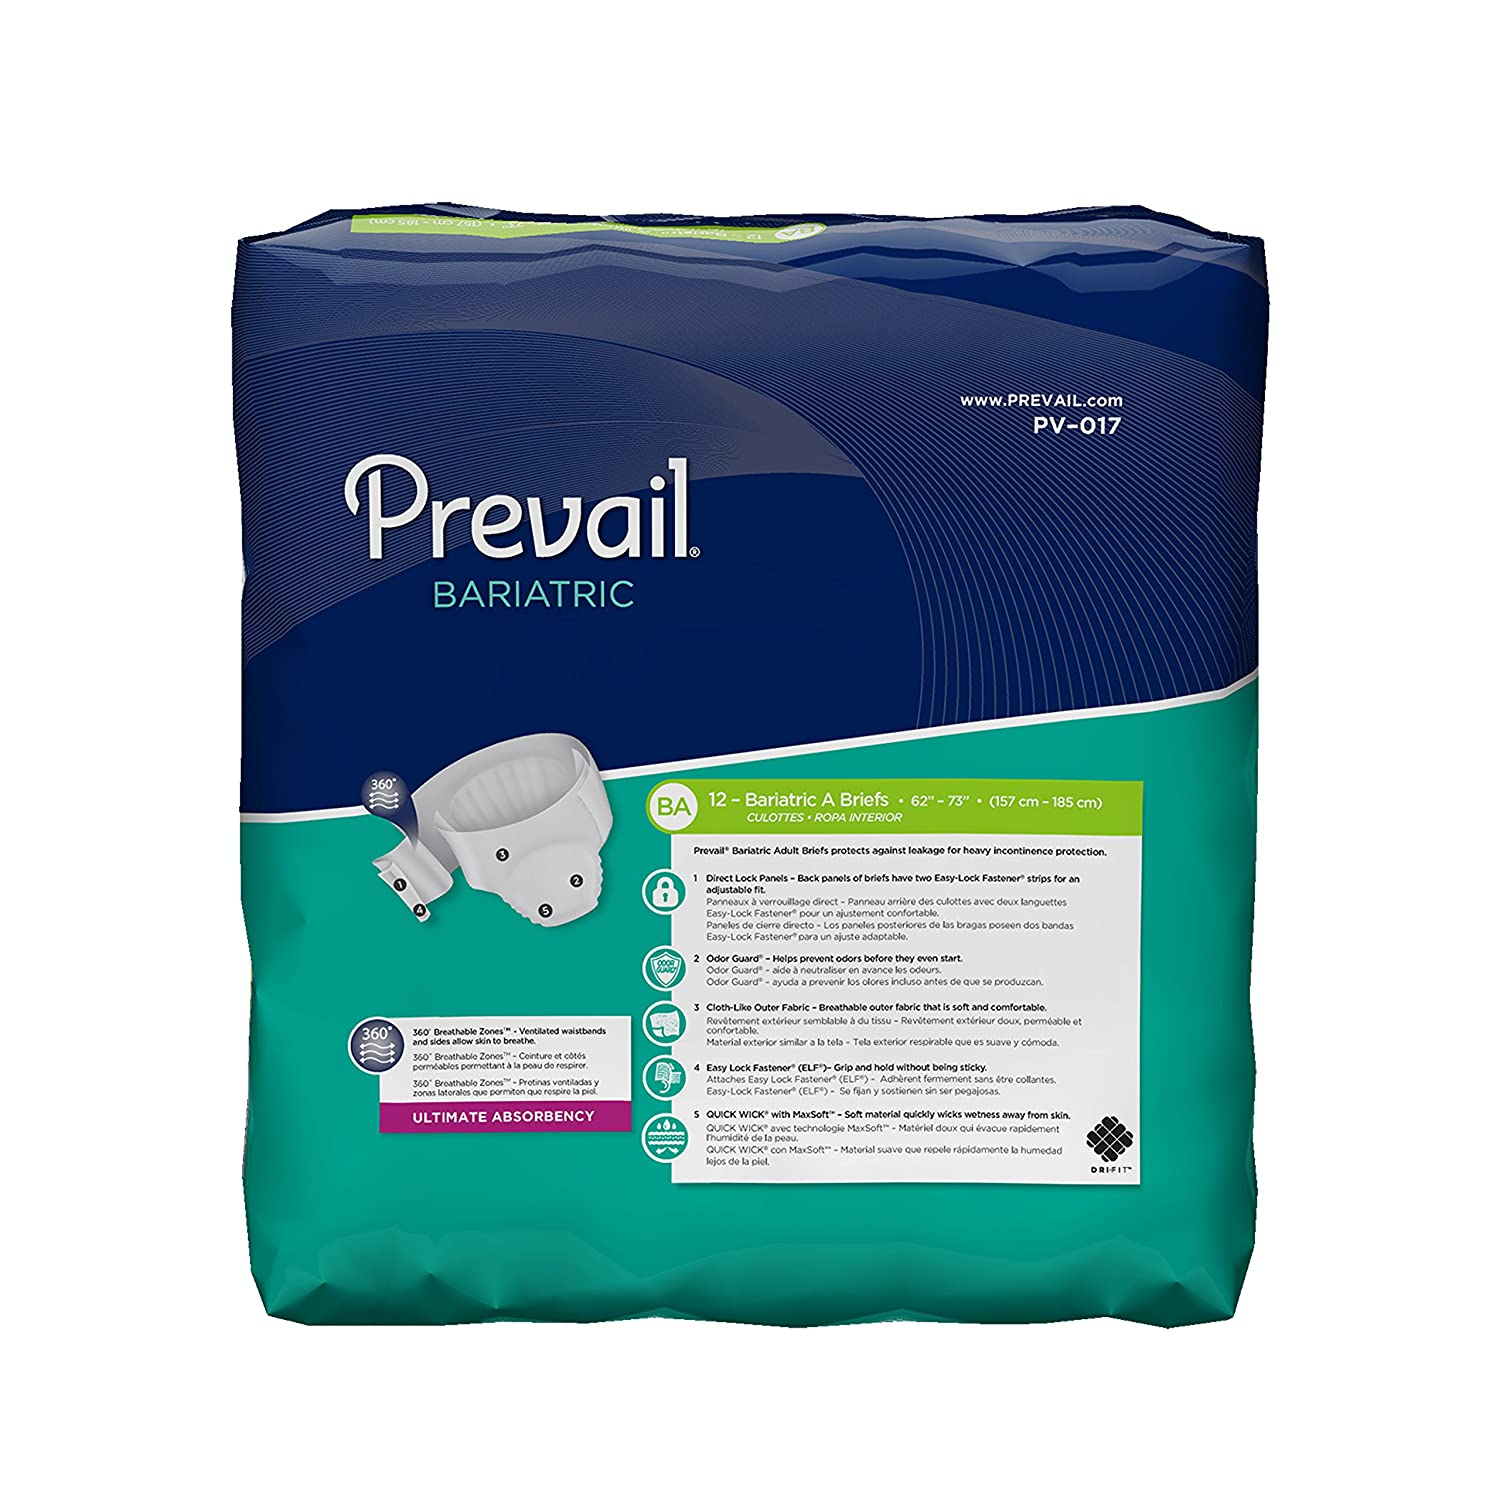 Amazon.com: FQPV017CA - Prevail Bariatric Brief Size A 62 - 73: Industrial & Scientific